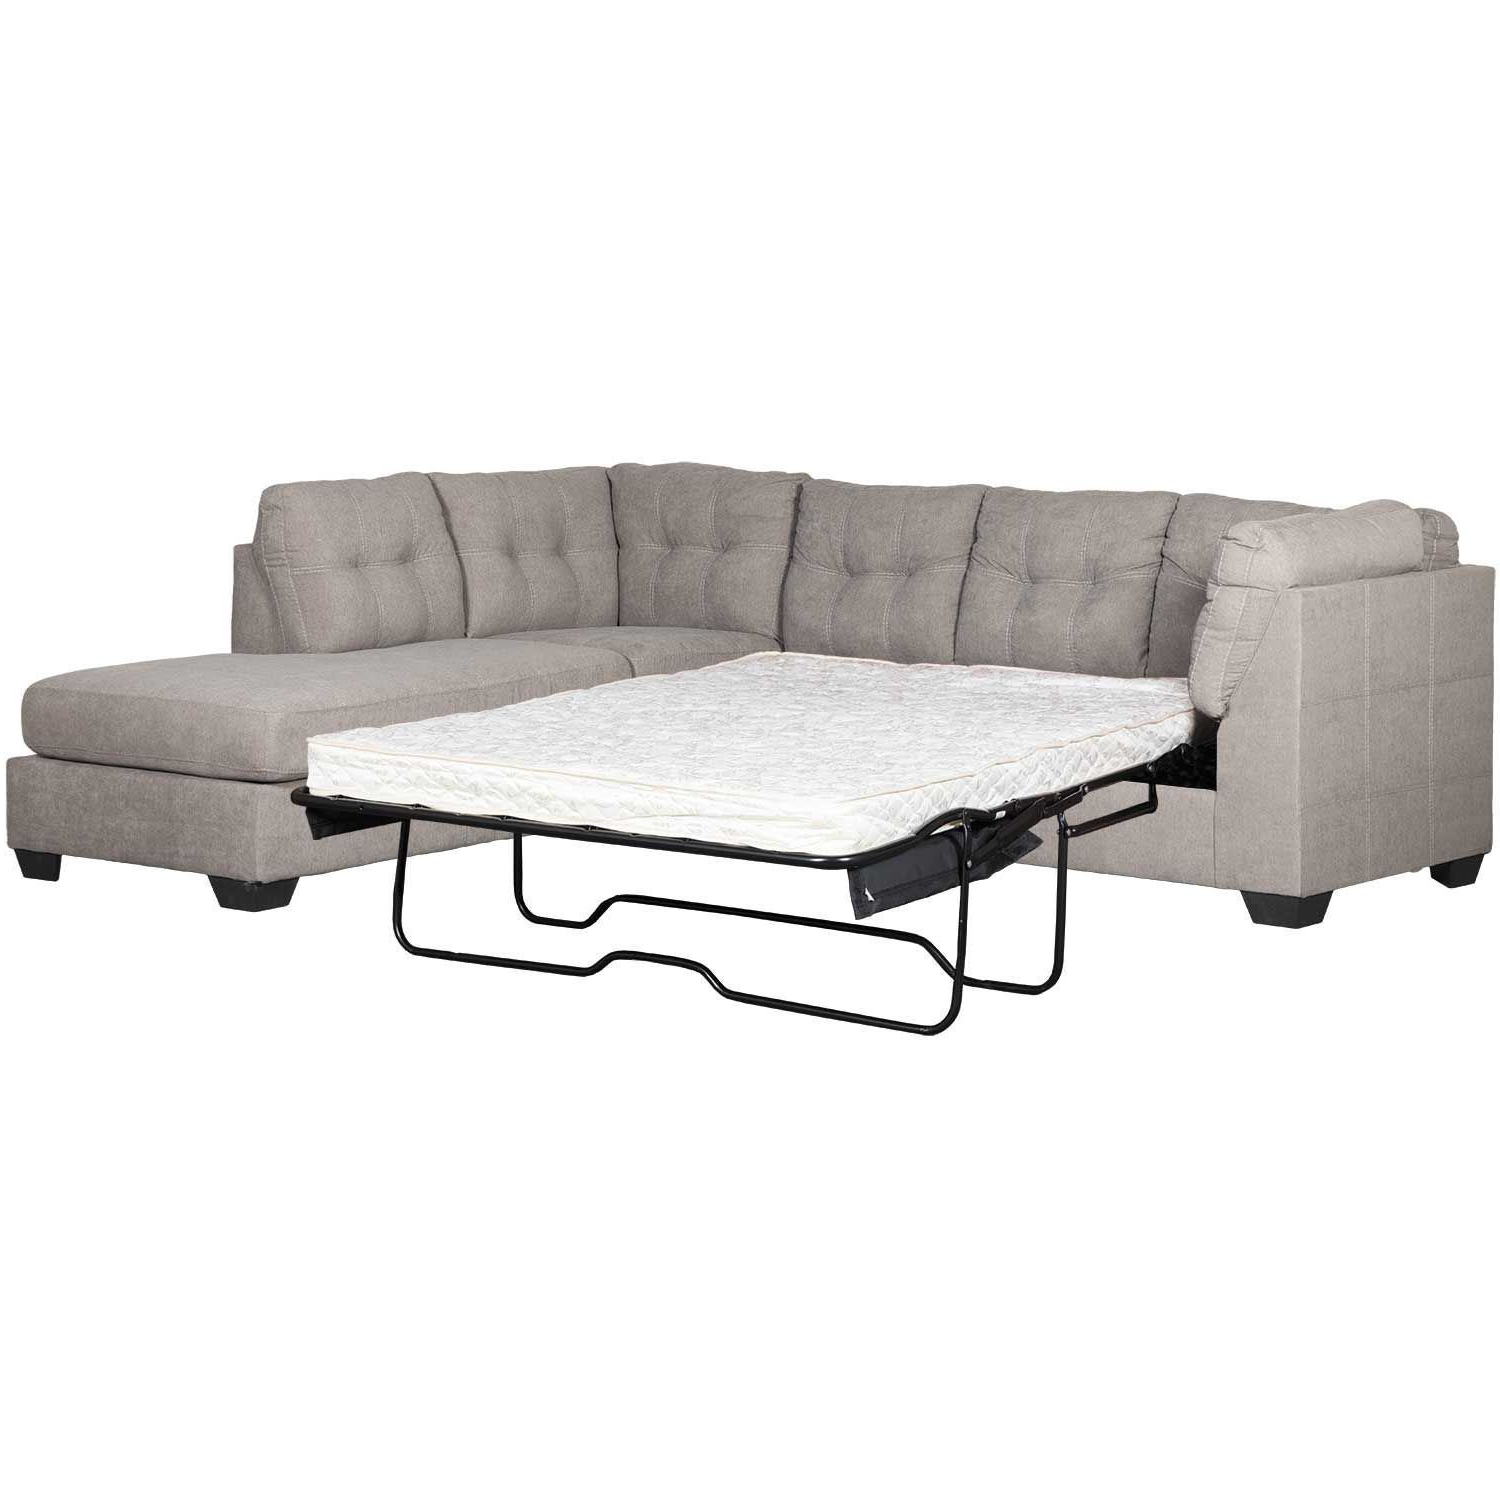 Mercury Right Arm Facing Innerspring Queen Regarding Well Known Lucy Grey 2 Piece Sleeper Sectionals With Raf Chaise (View 12 of 20)